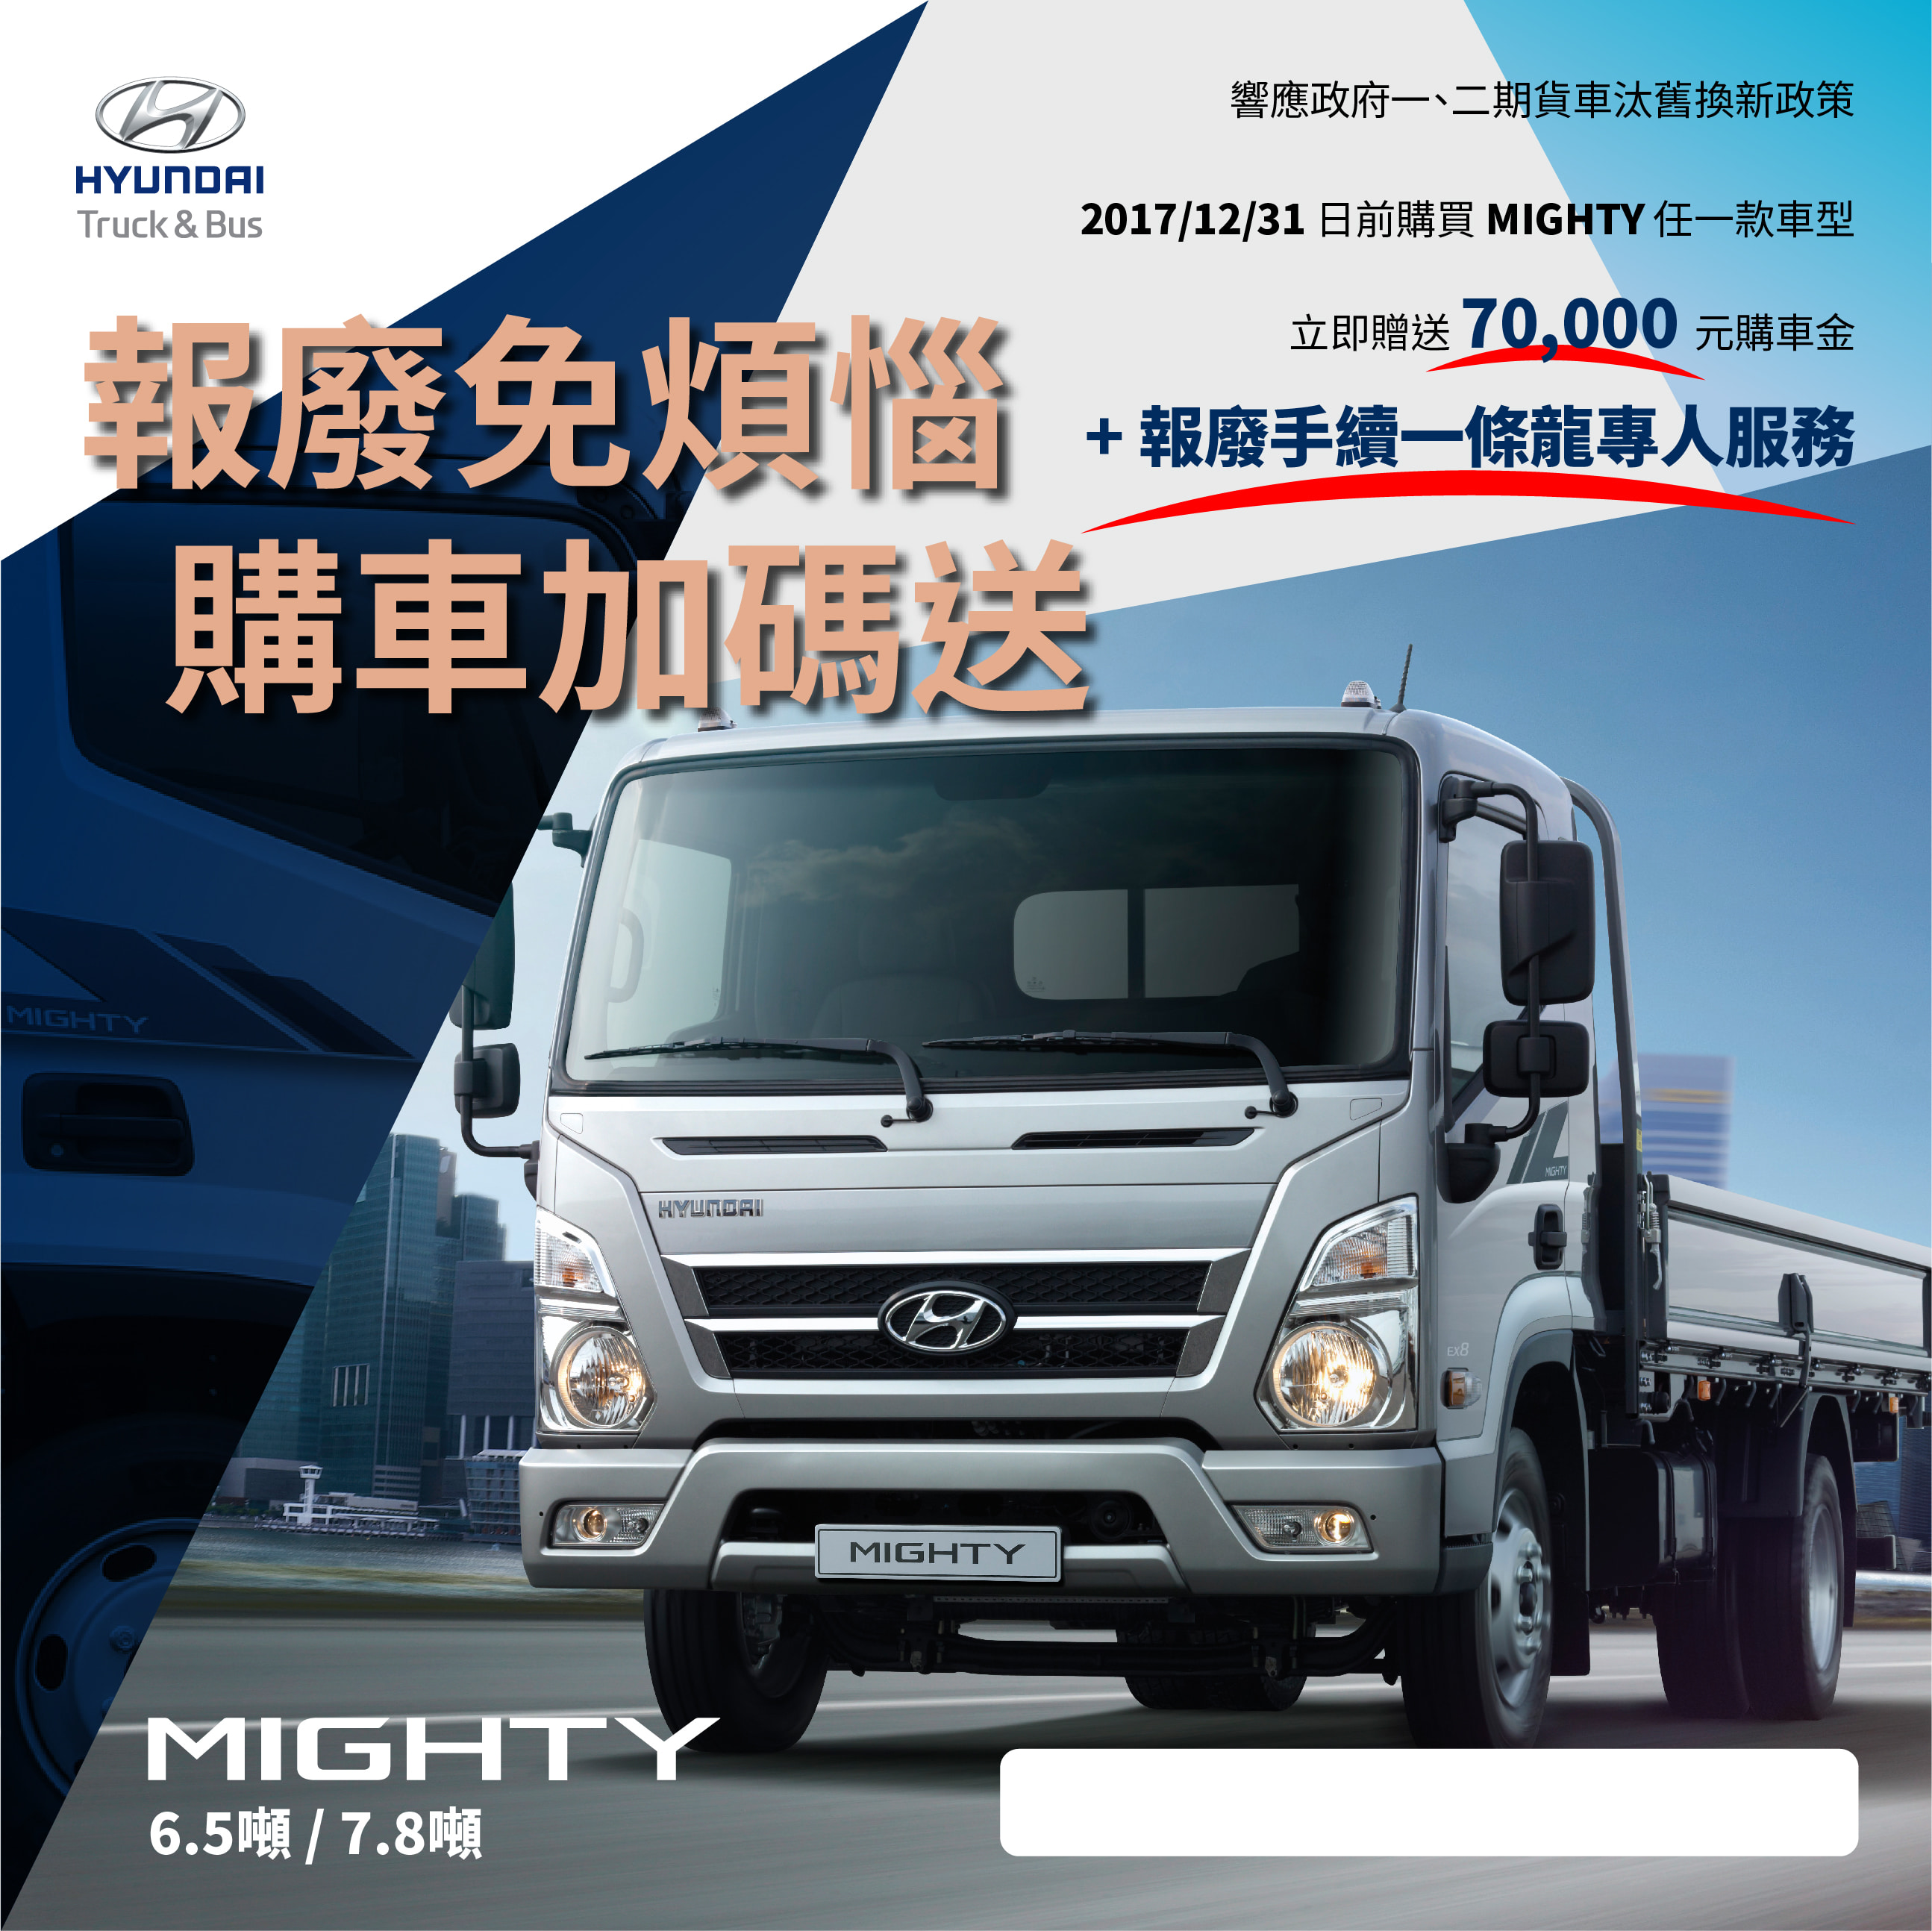 HYUNDAI MIGHTY 優惠議題.jpg